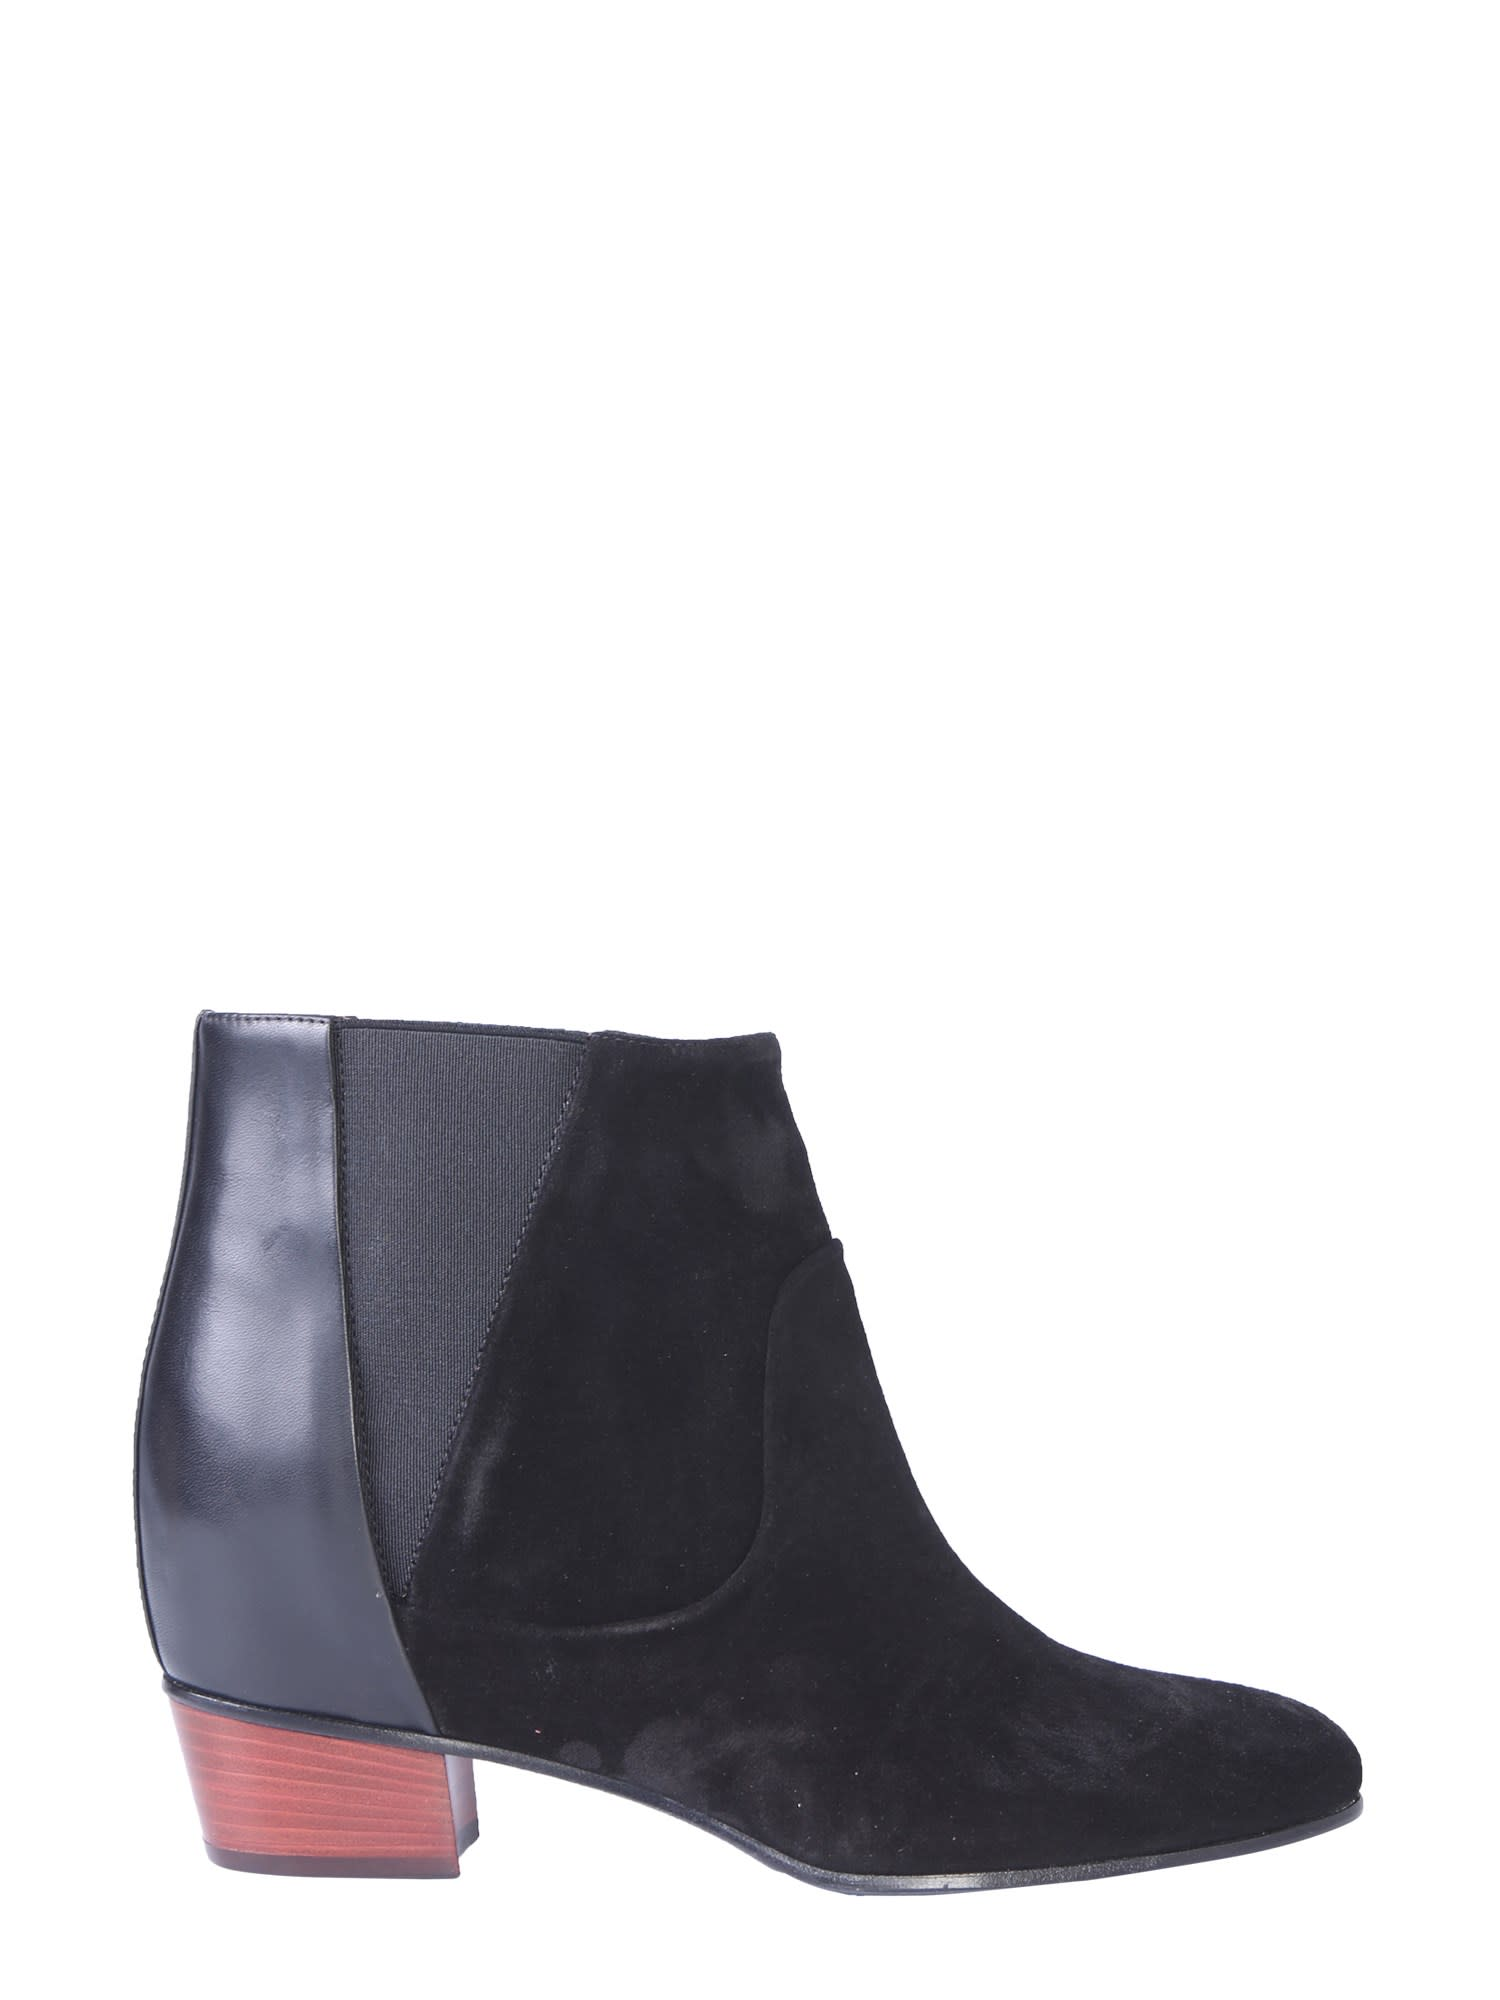 Buy Golden Goose Dana Boots online, shop Golden Goose shoes with free shipping